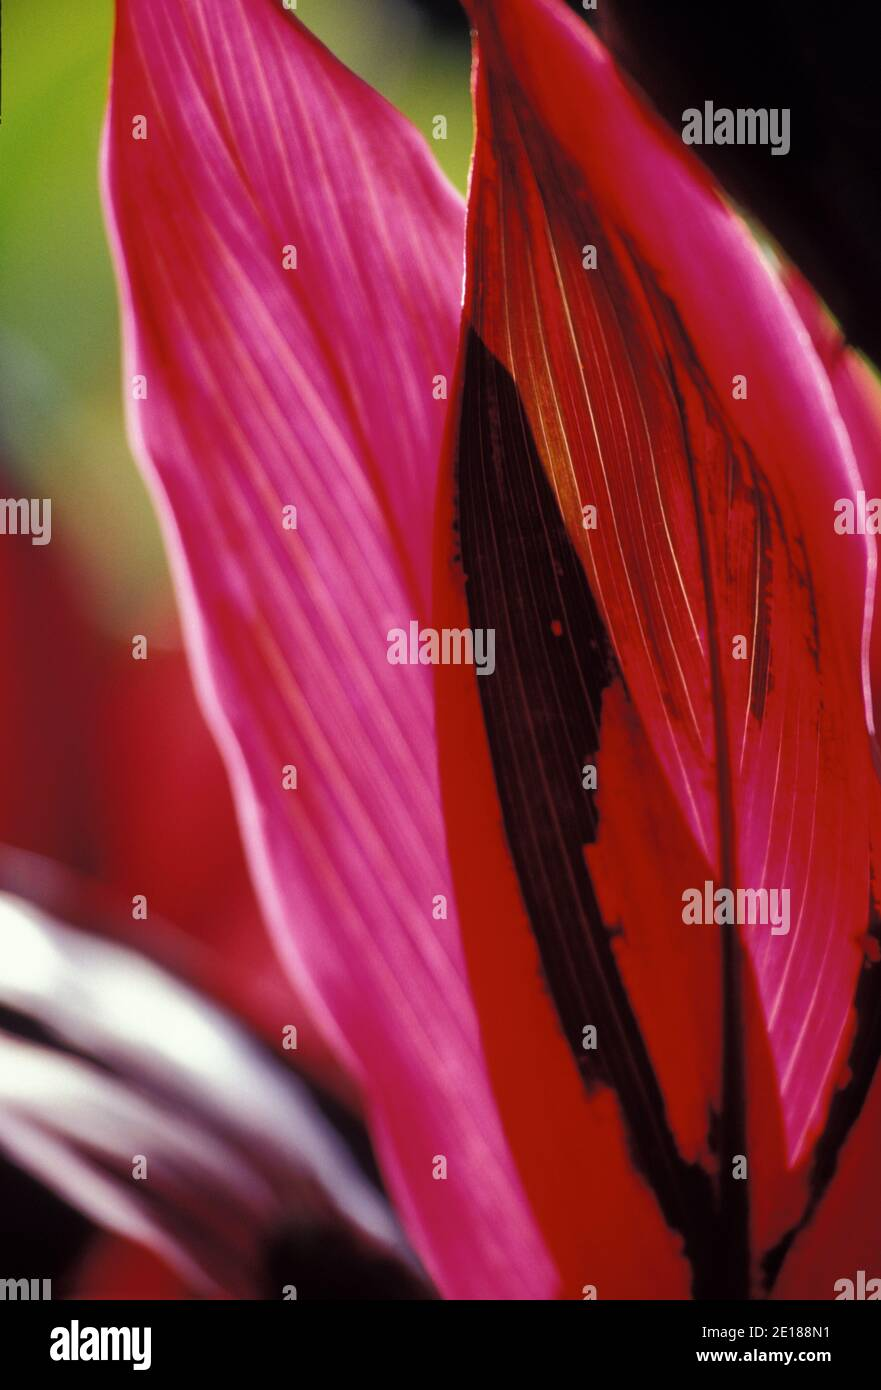 Red ti leaf closeup, backlit by sun Banque D'Images